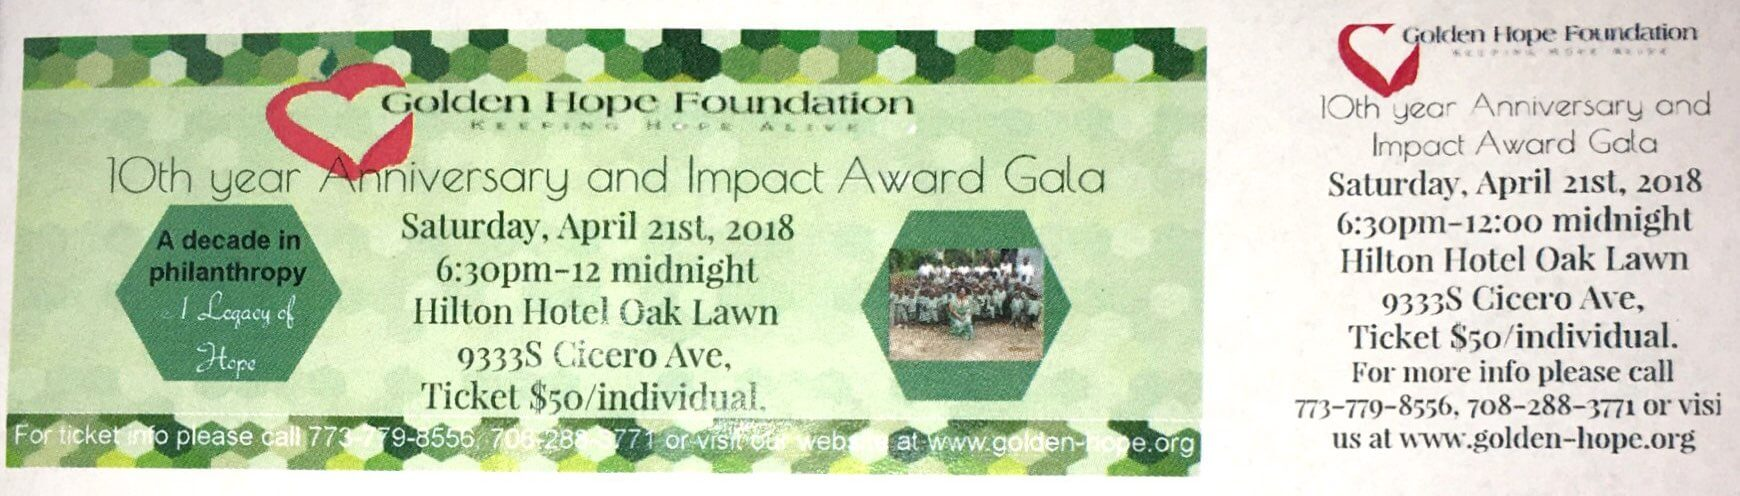 Golden Hope Foundation flyer